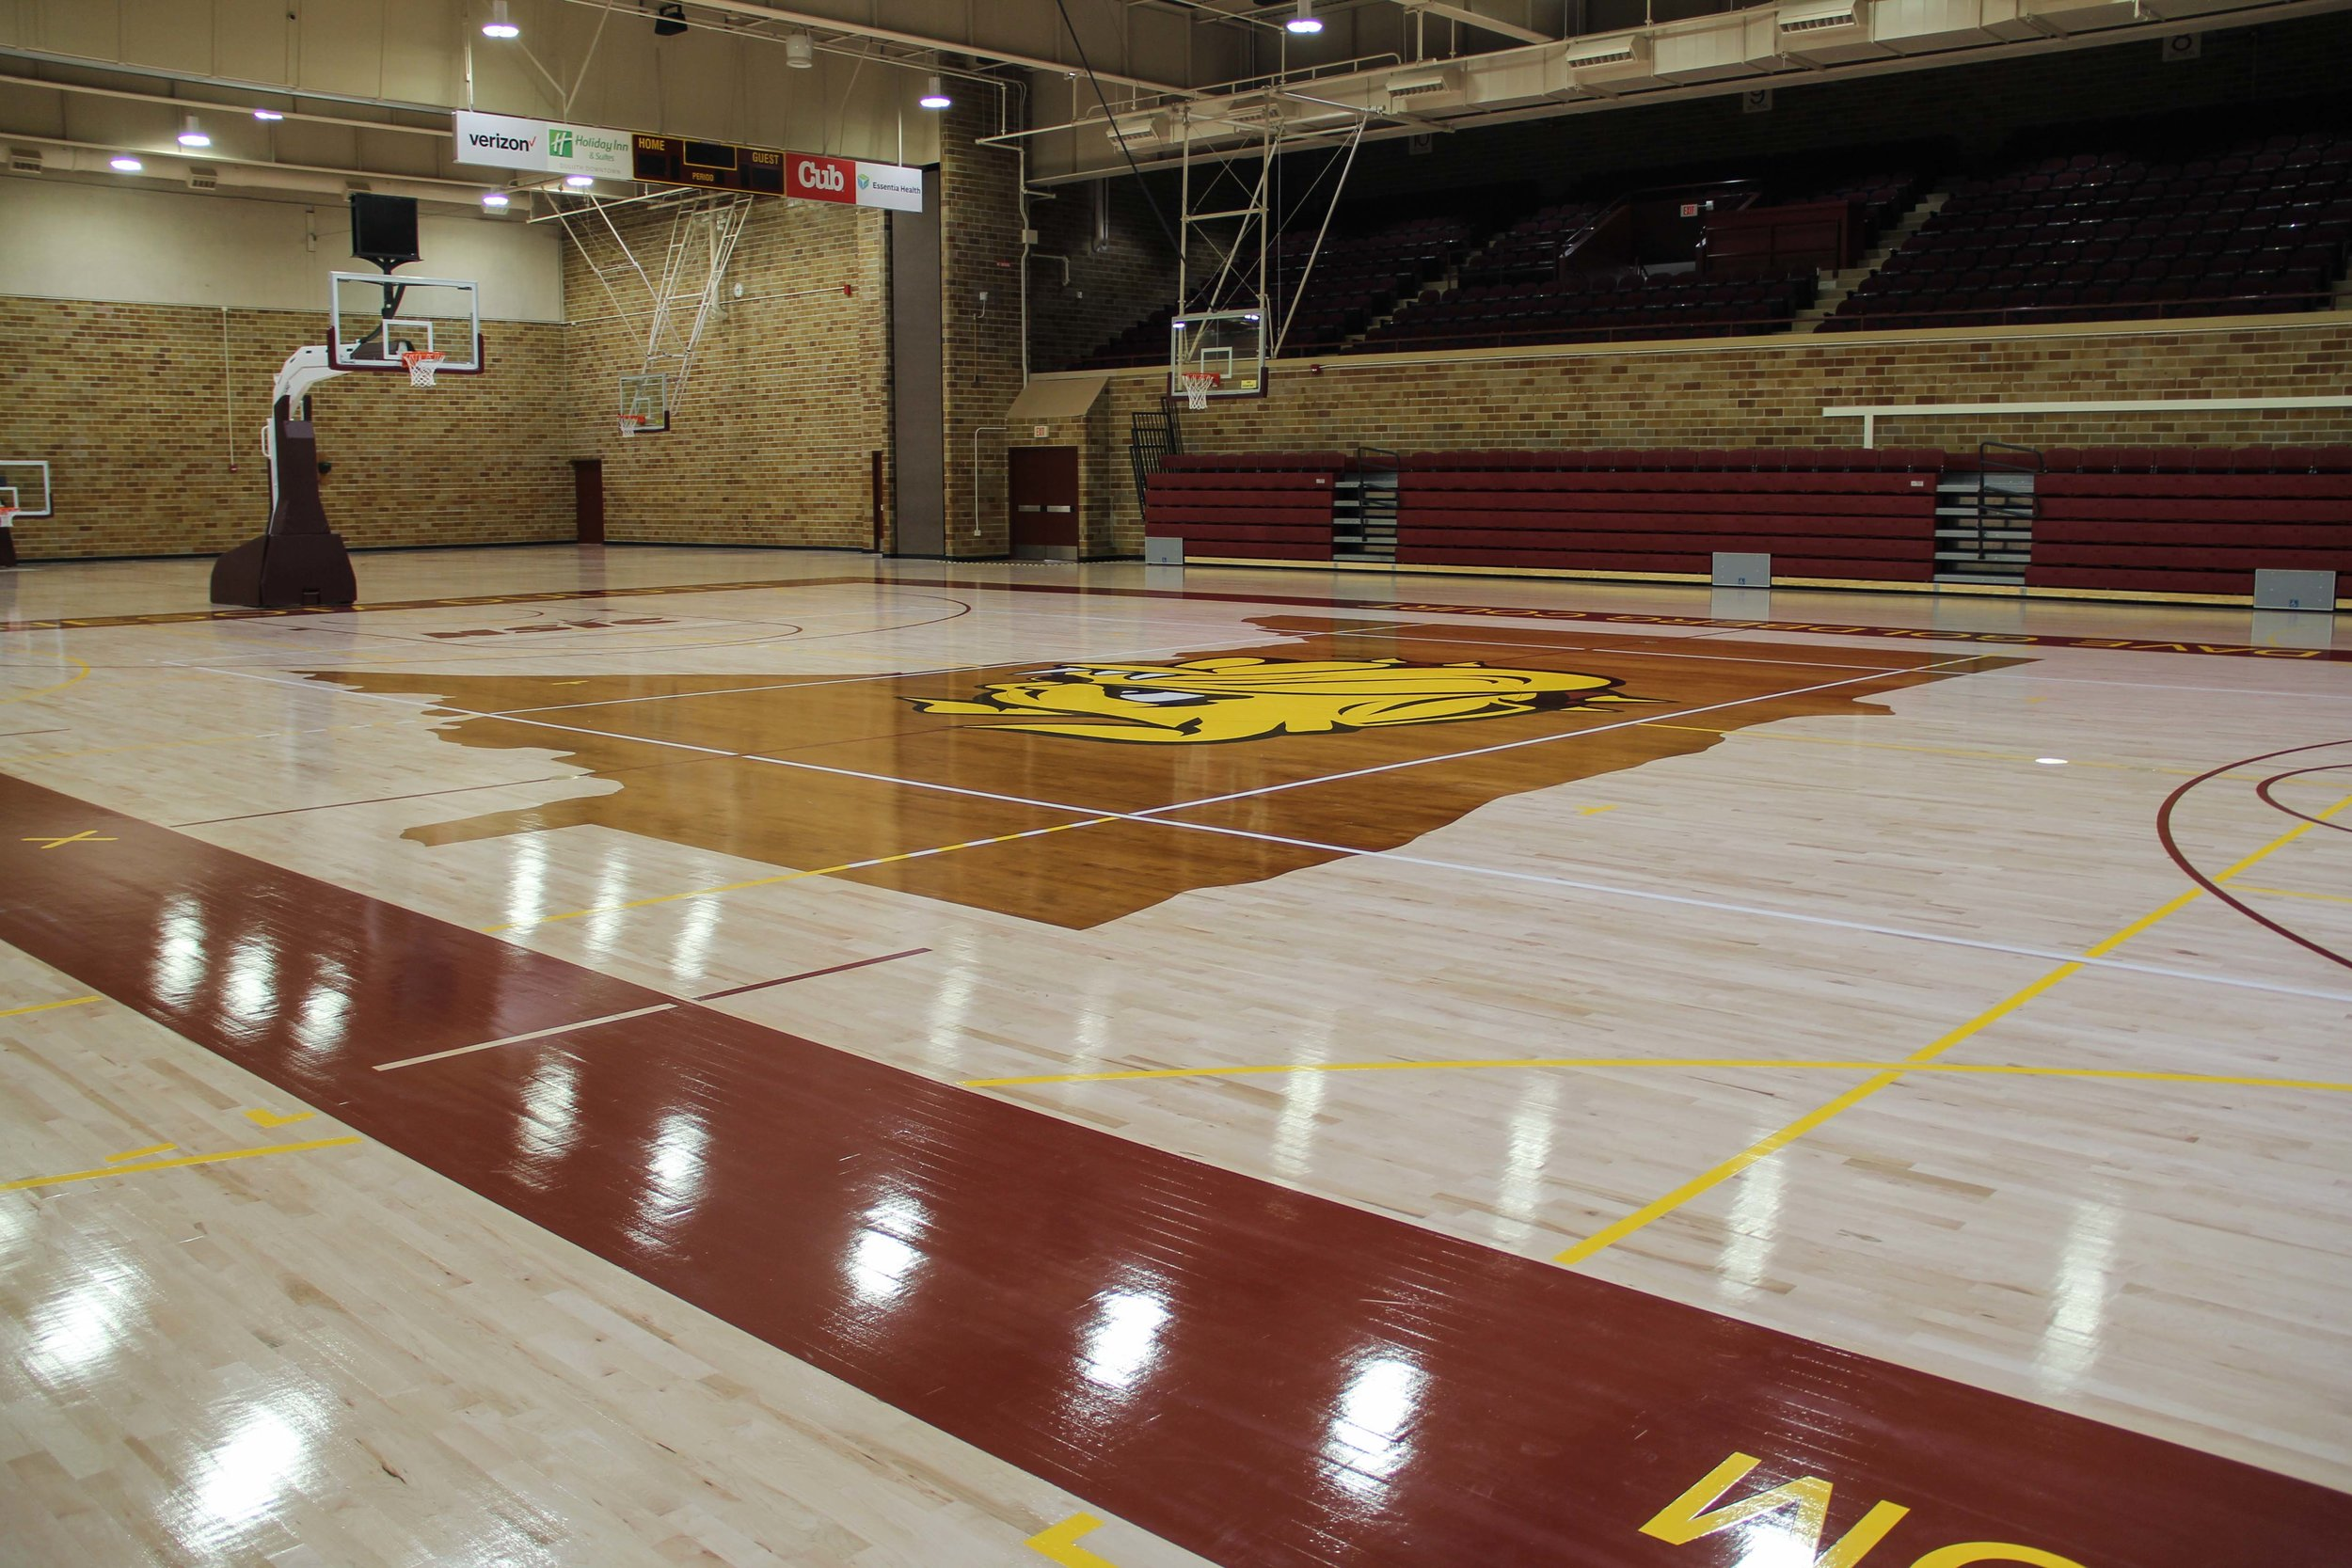 Romano Gym features the same flooring material used by the Minnesota Timberwolves. Photo by Krista Mathes